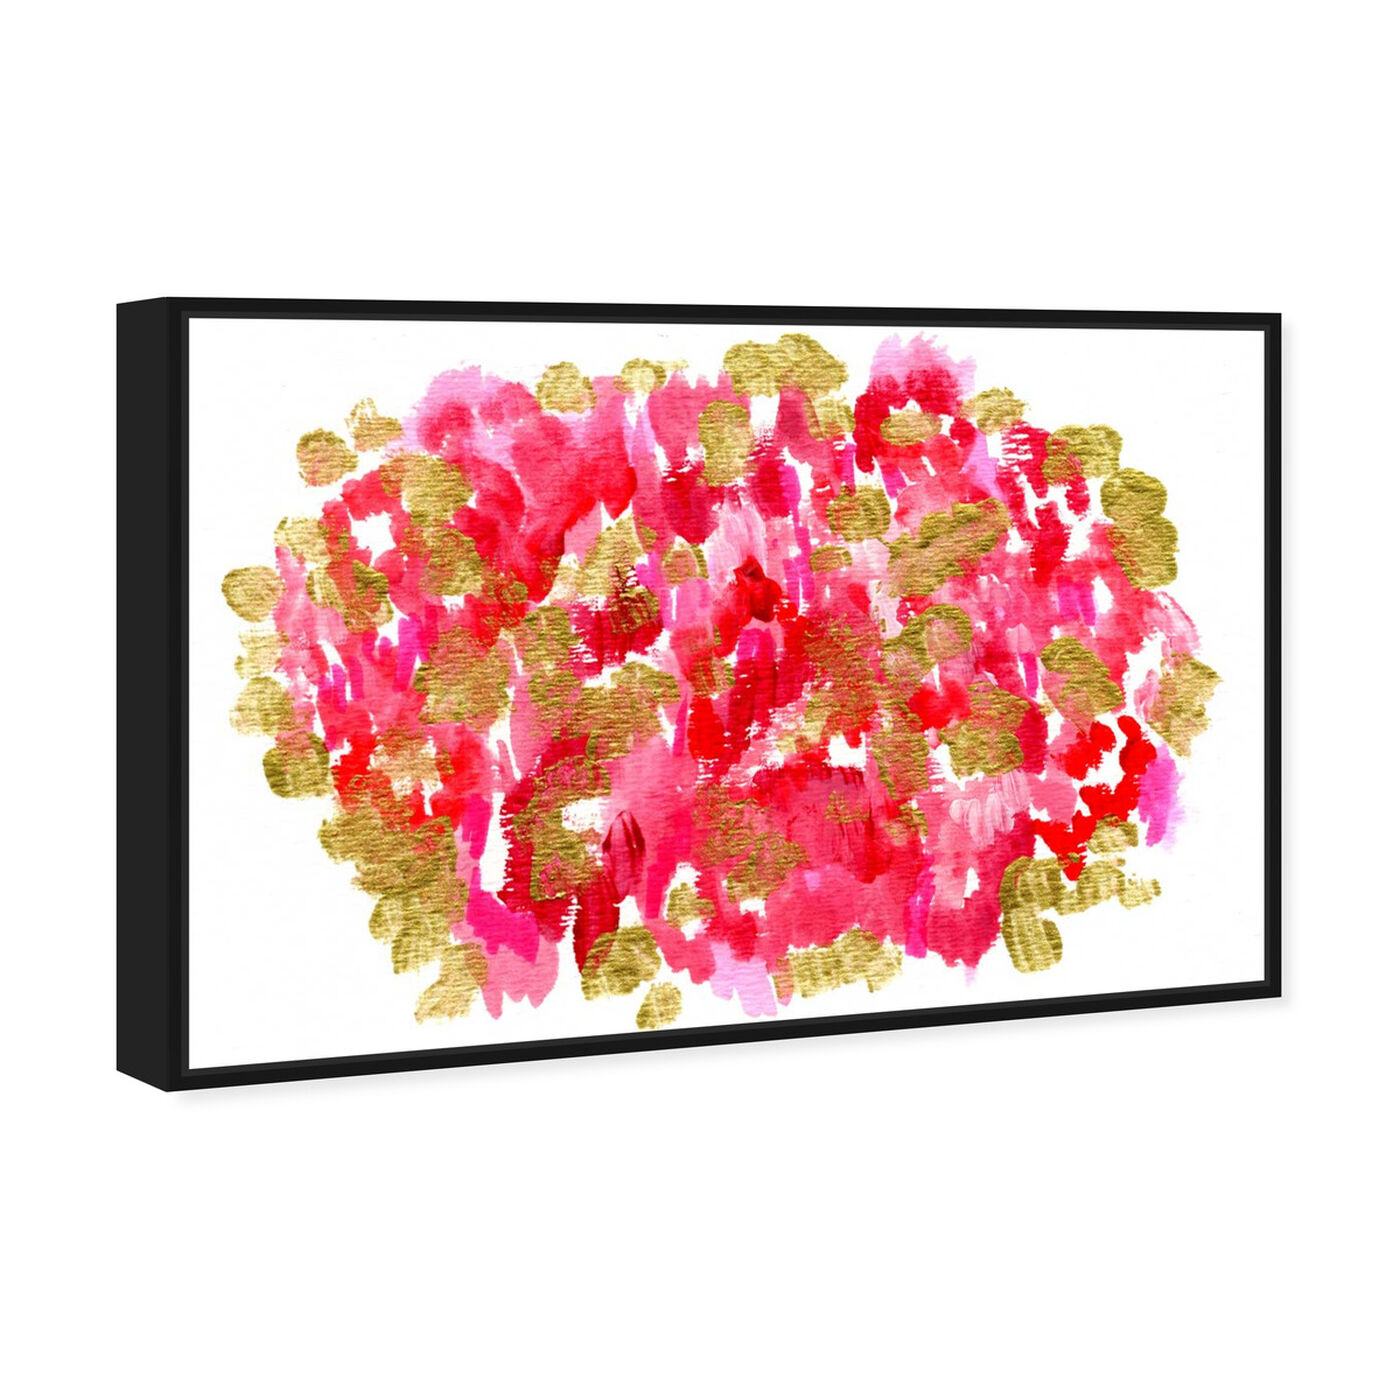 Angled view of Pomegranate Garden featuring abstract and paint art.